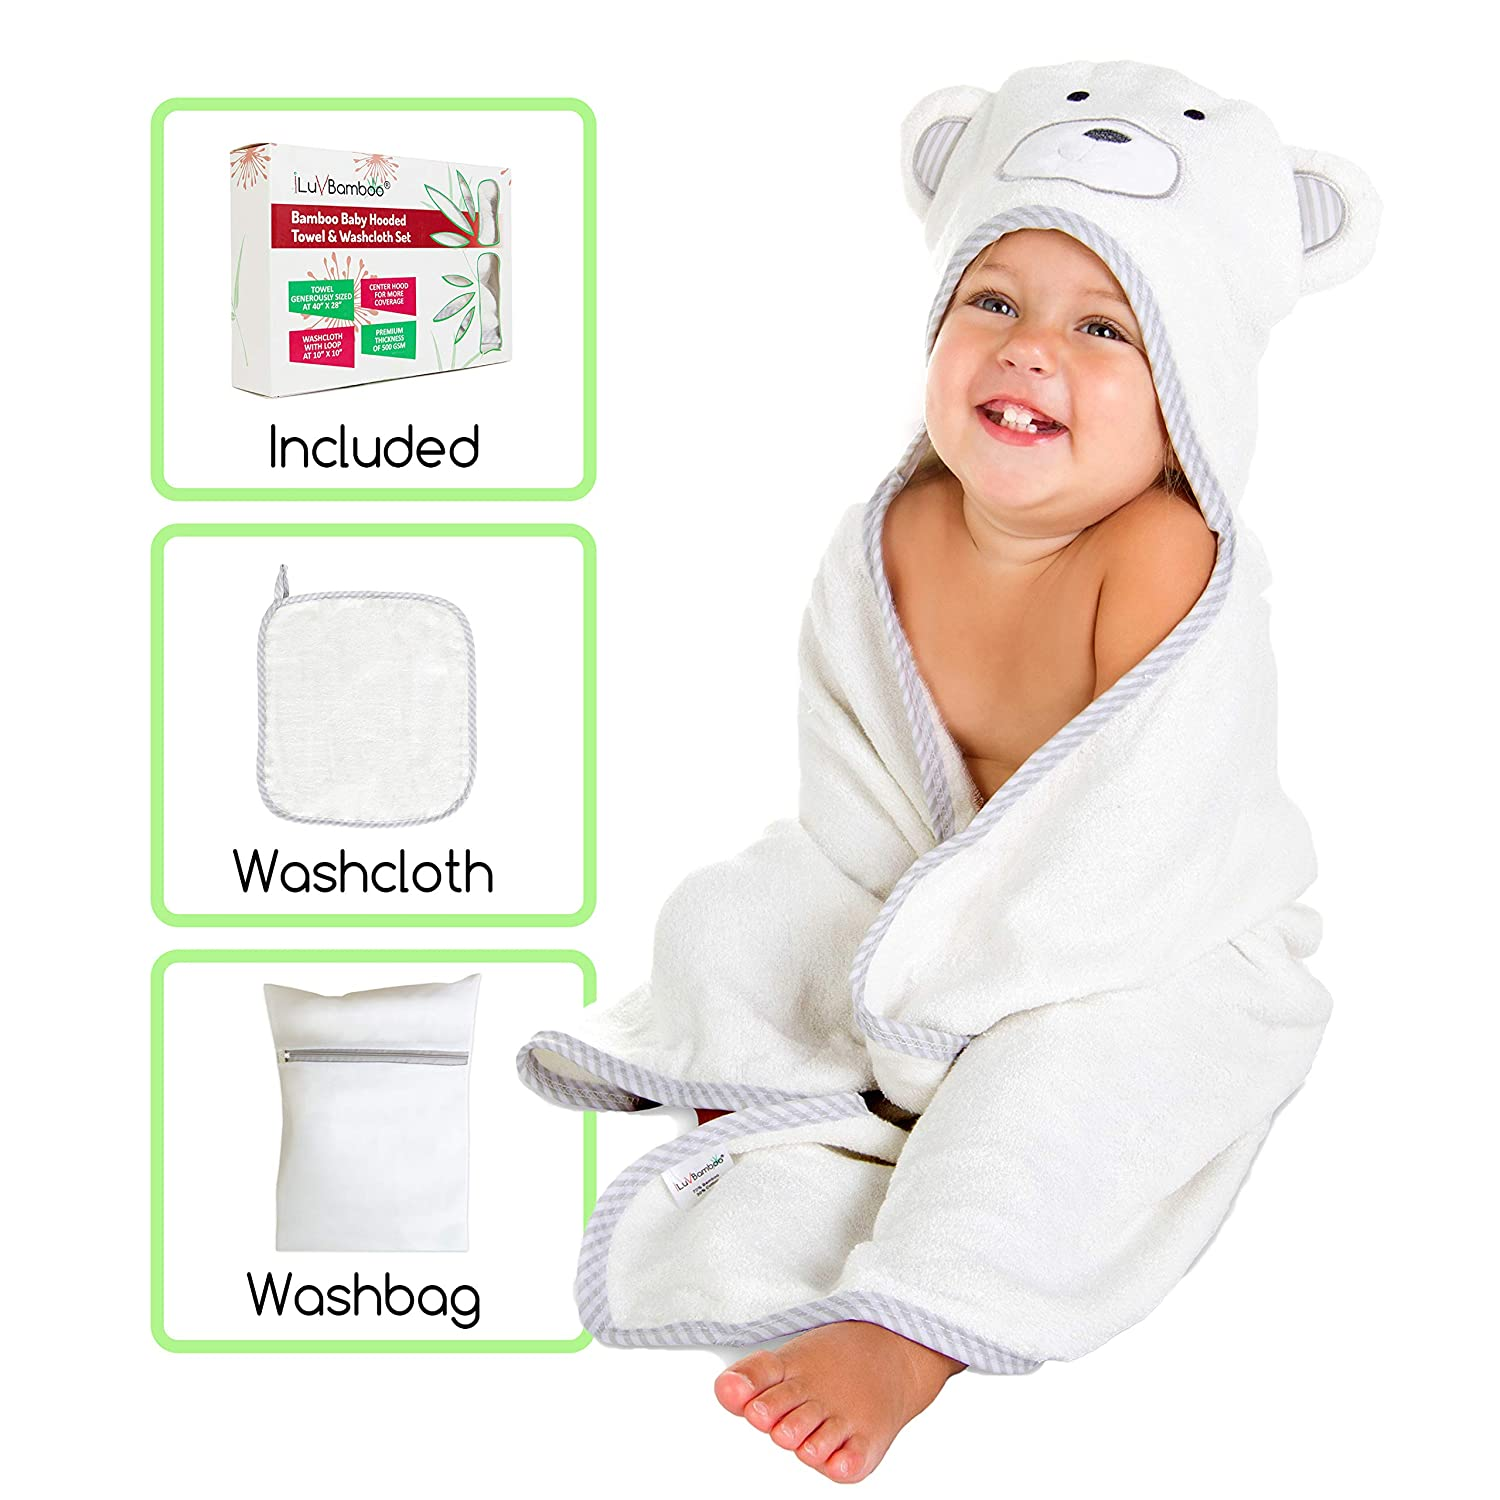 iLuvBamboo Baby Hooded Towel & Washcloth Set - Includes Washbag - Extra Large 28' x 40' - Soft, Thick & Absorbent Unisex White Gray Bear Design - Best for Newborns & Toddlers - Boys and Girls Page 9